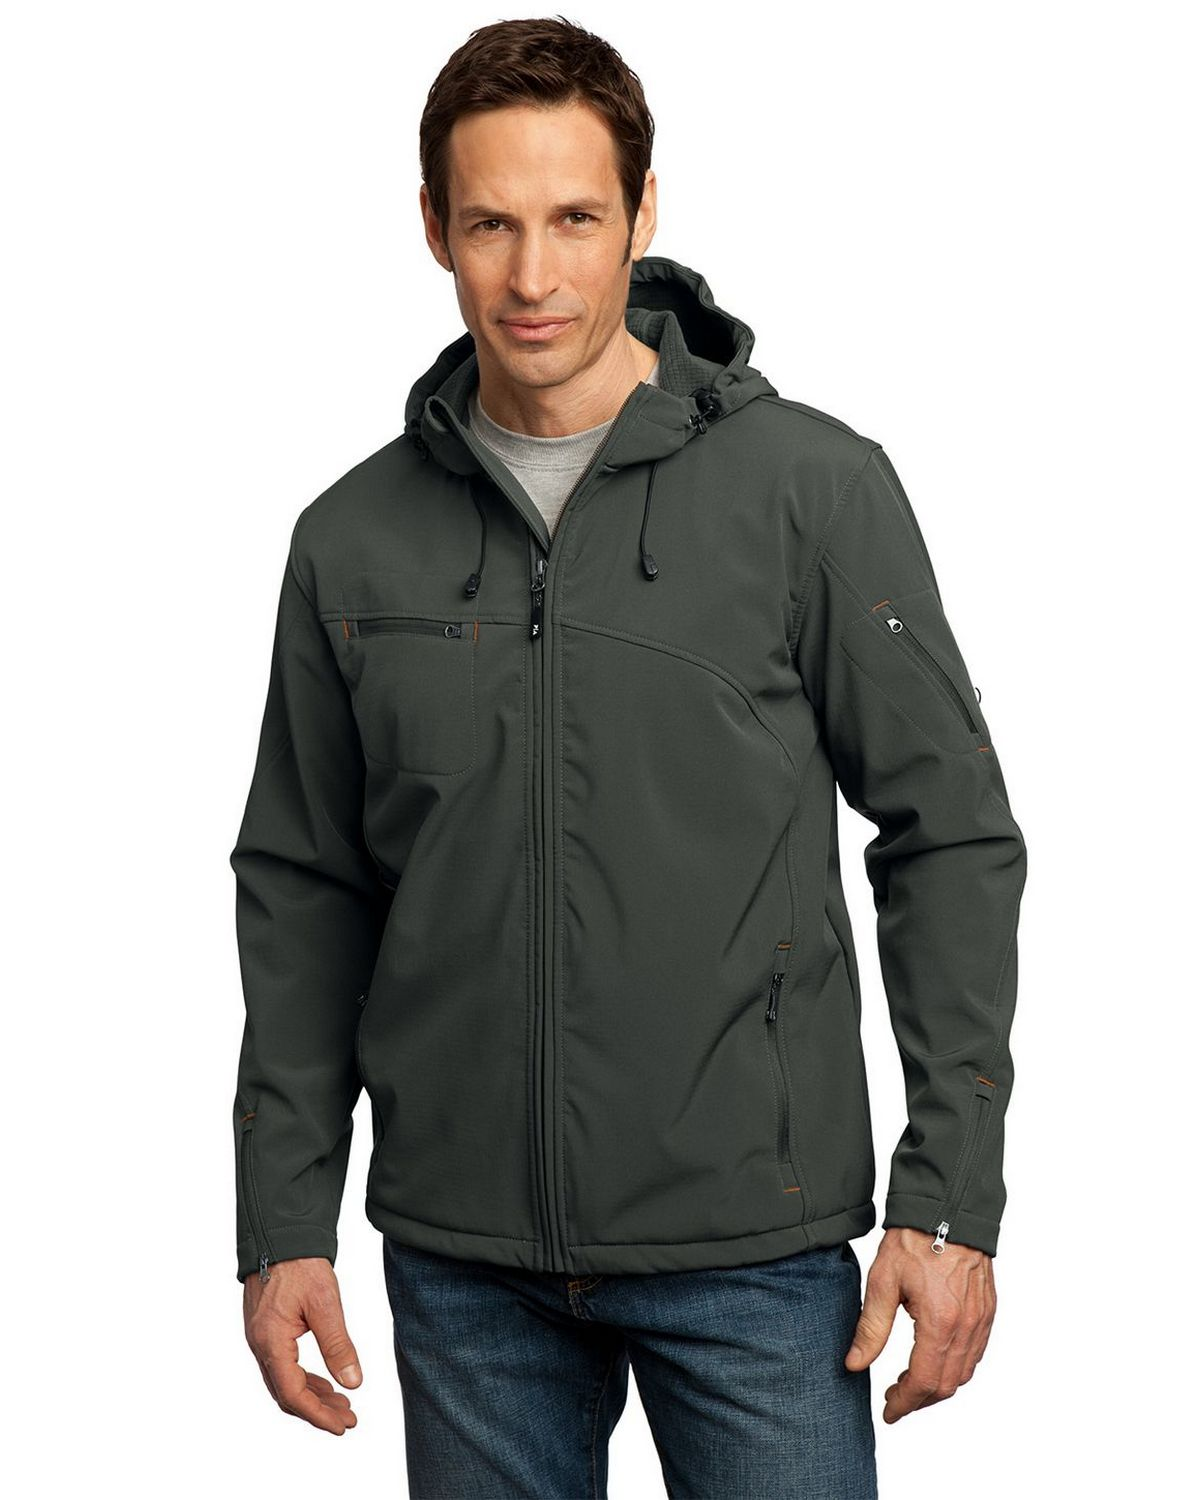 Port Authority J706 Textured Hooded Soft Shell Jacket